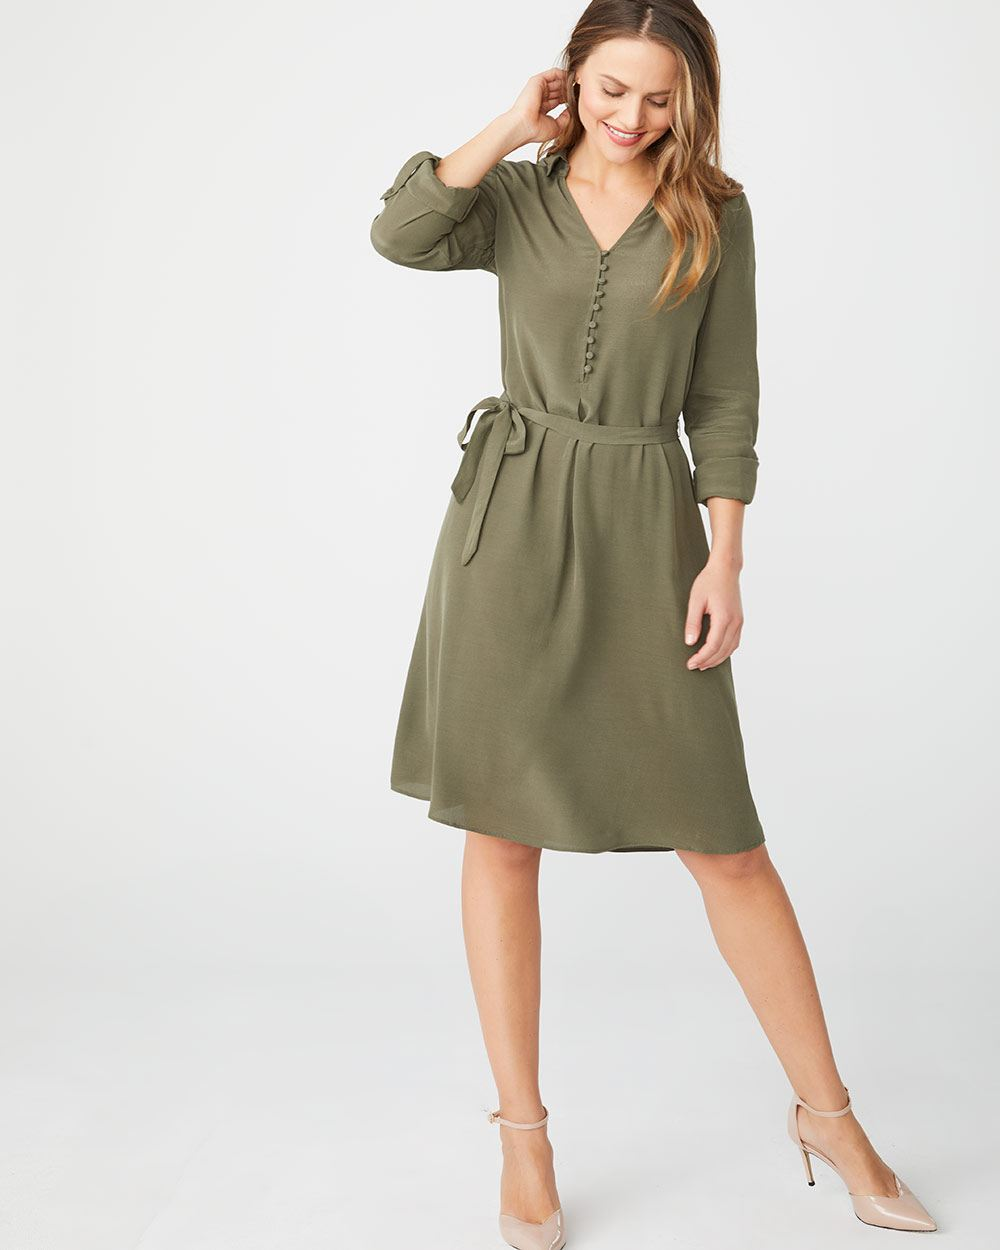 Belted shirtdress with rolled-up sleeve